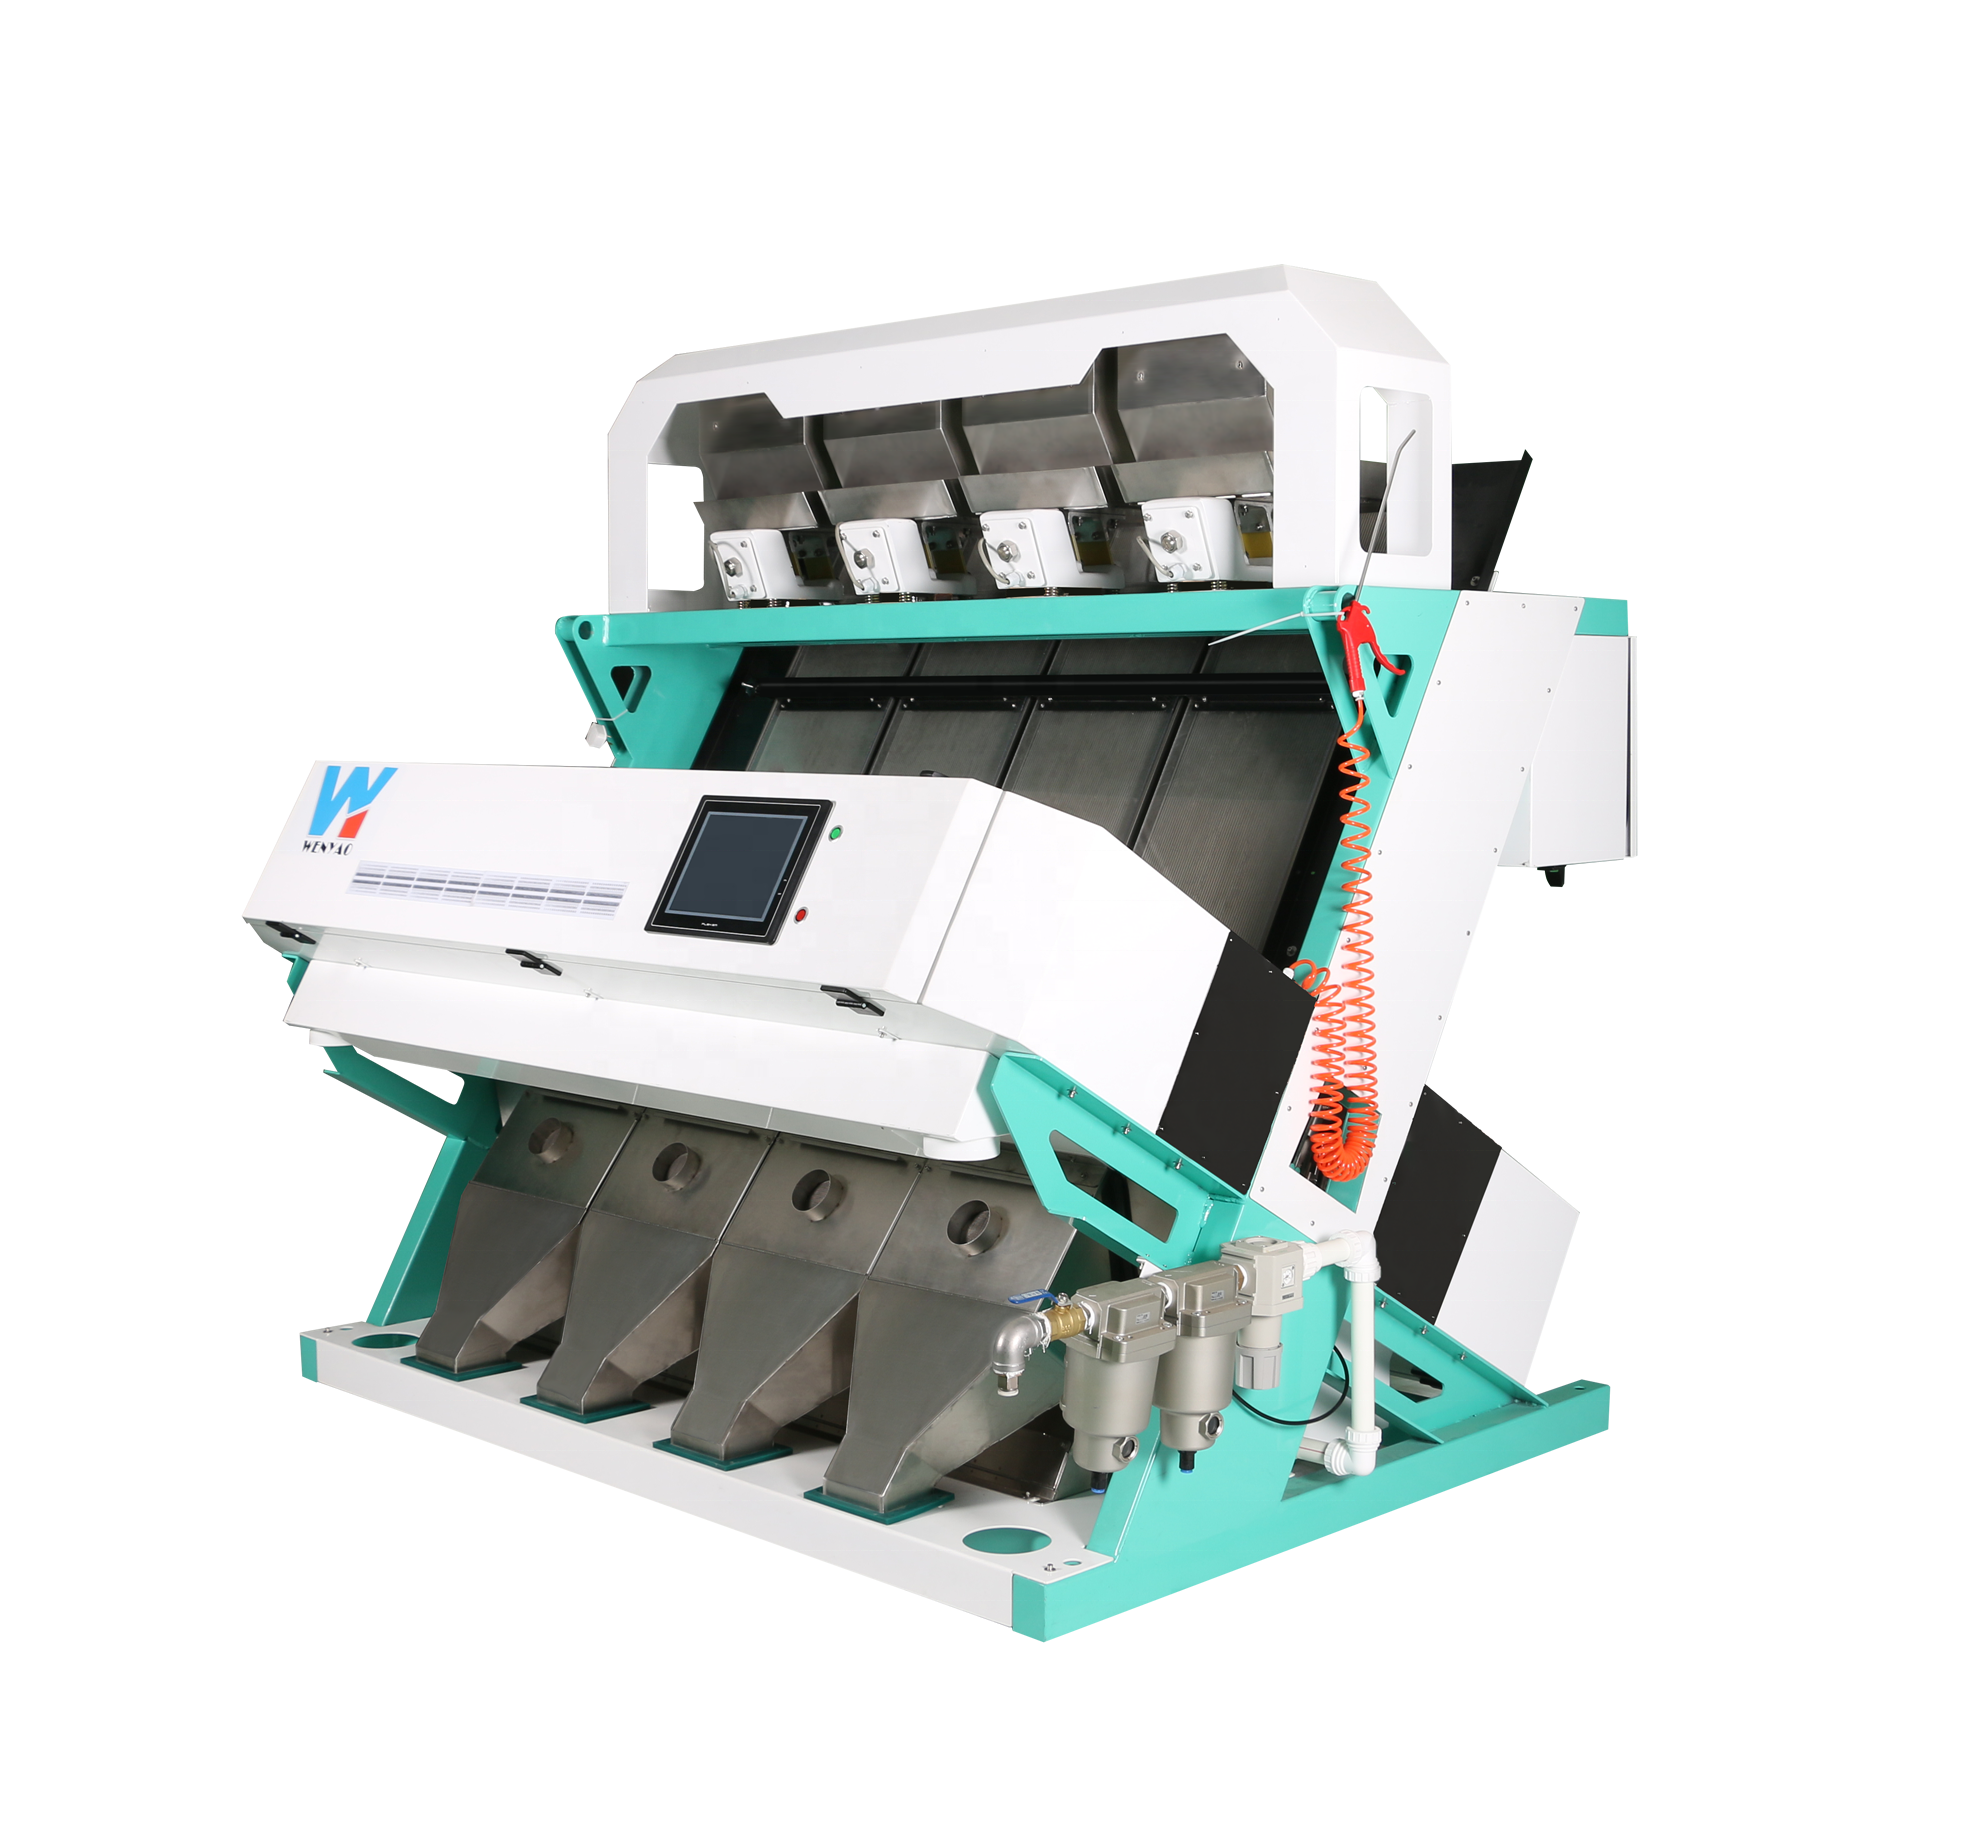 Areca-nut color sorter machine for sorting broken betel nut